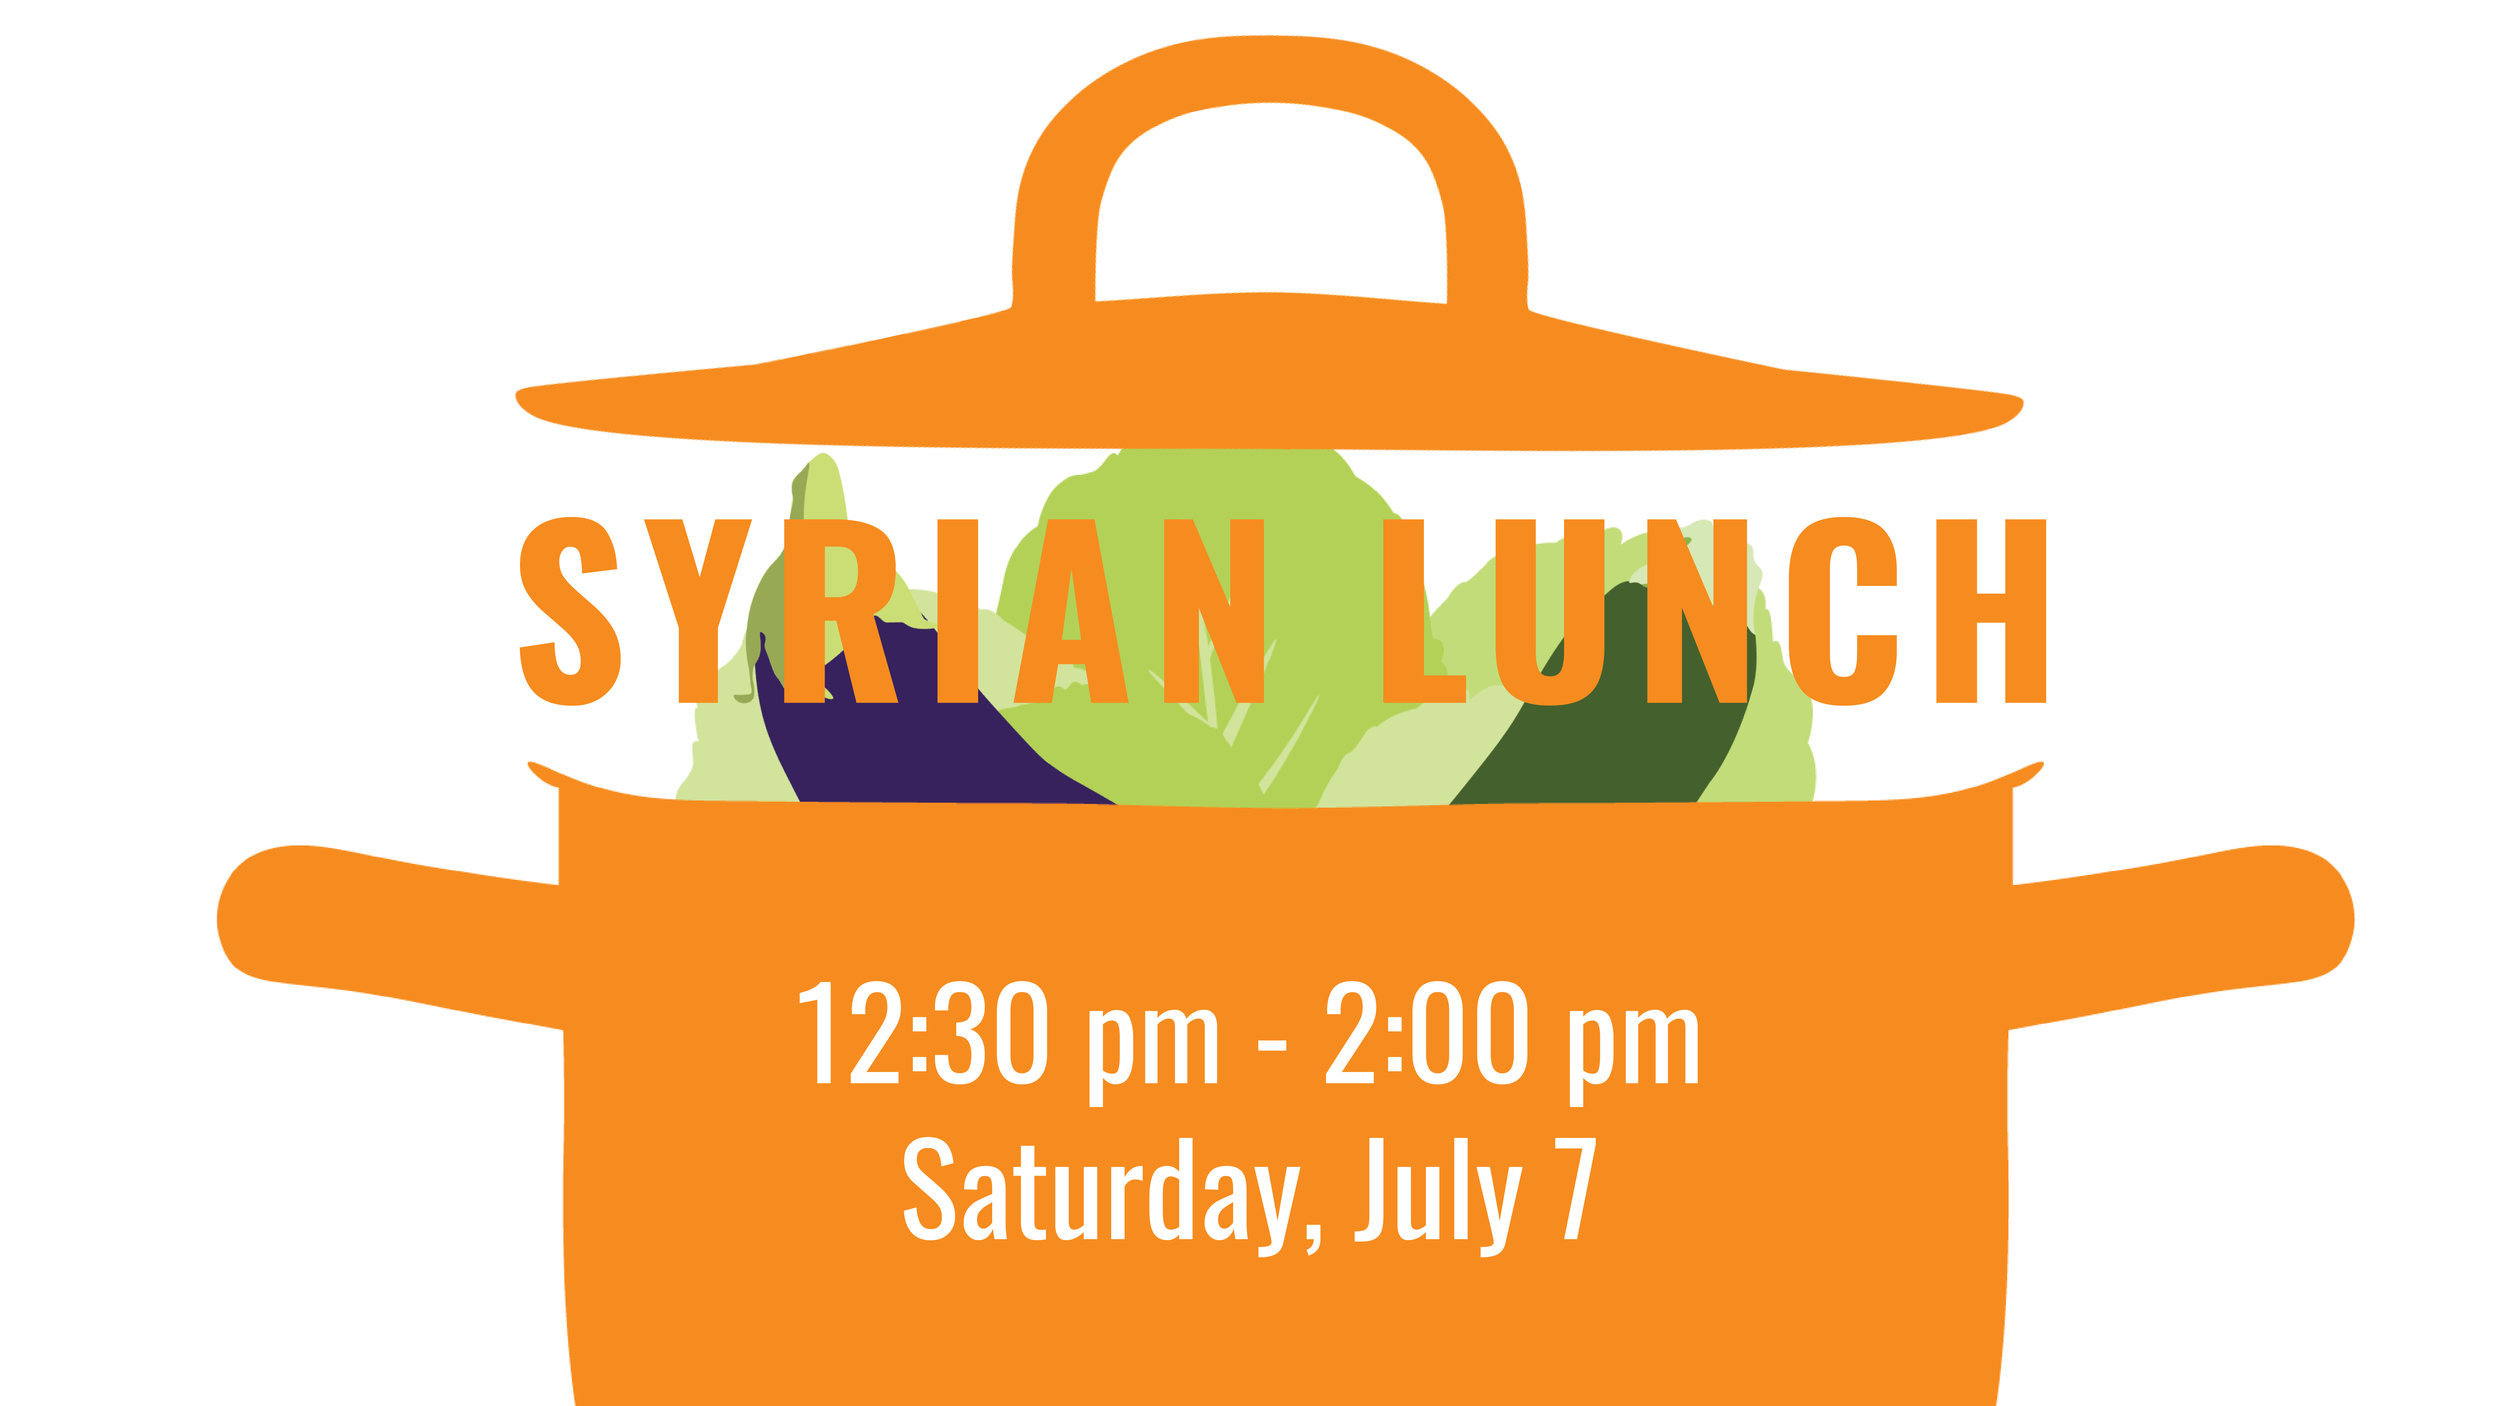 180701 Syrian Lunch FB Event Image.jpg